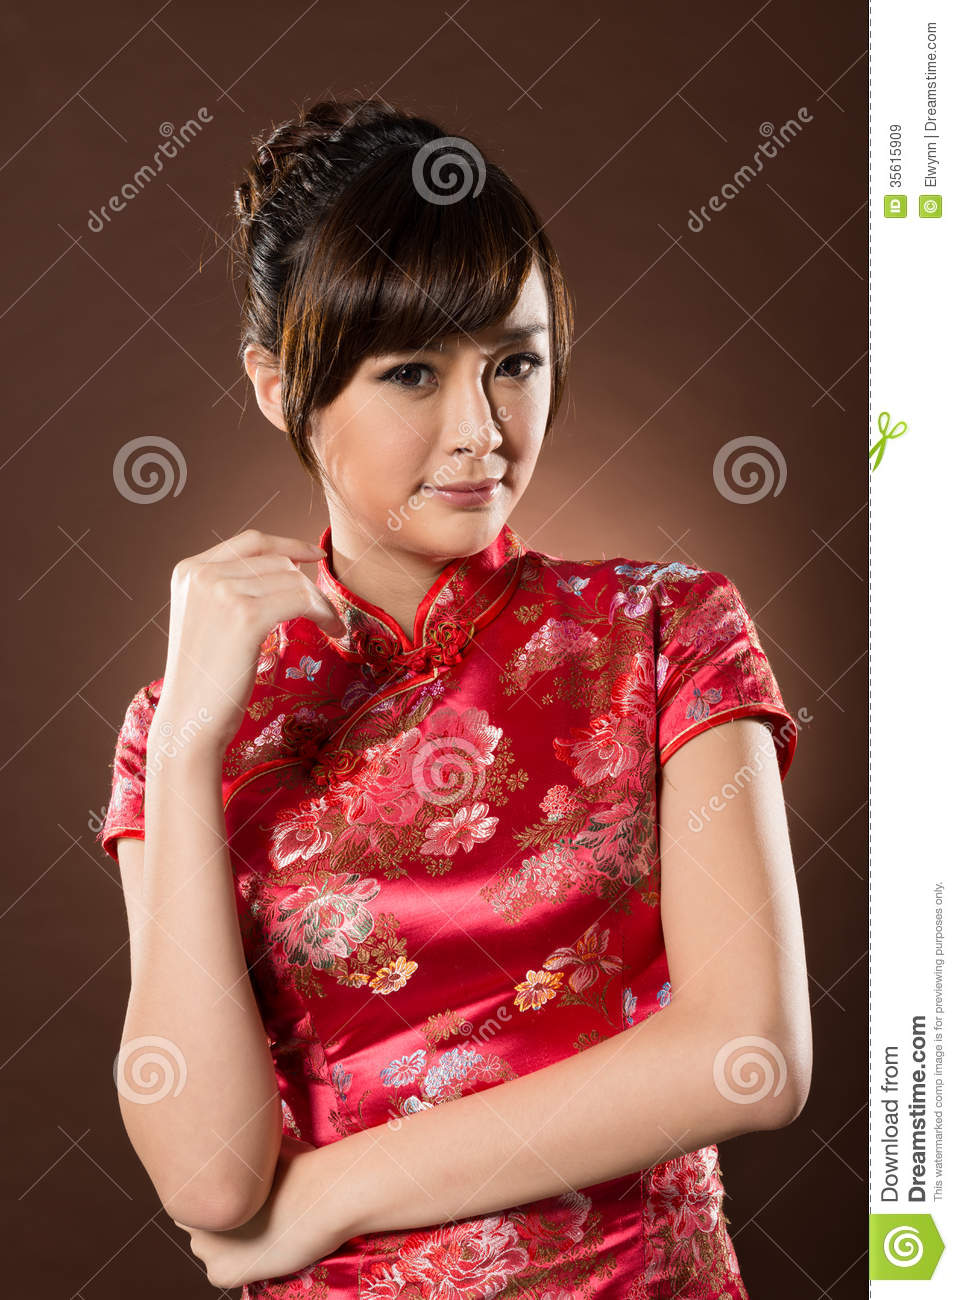 Are chinese women attractive